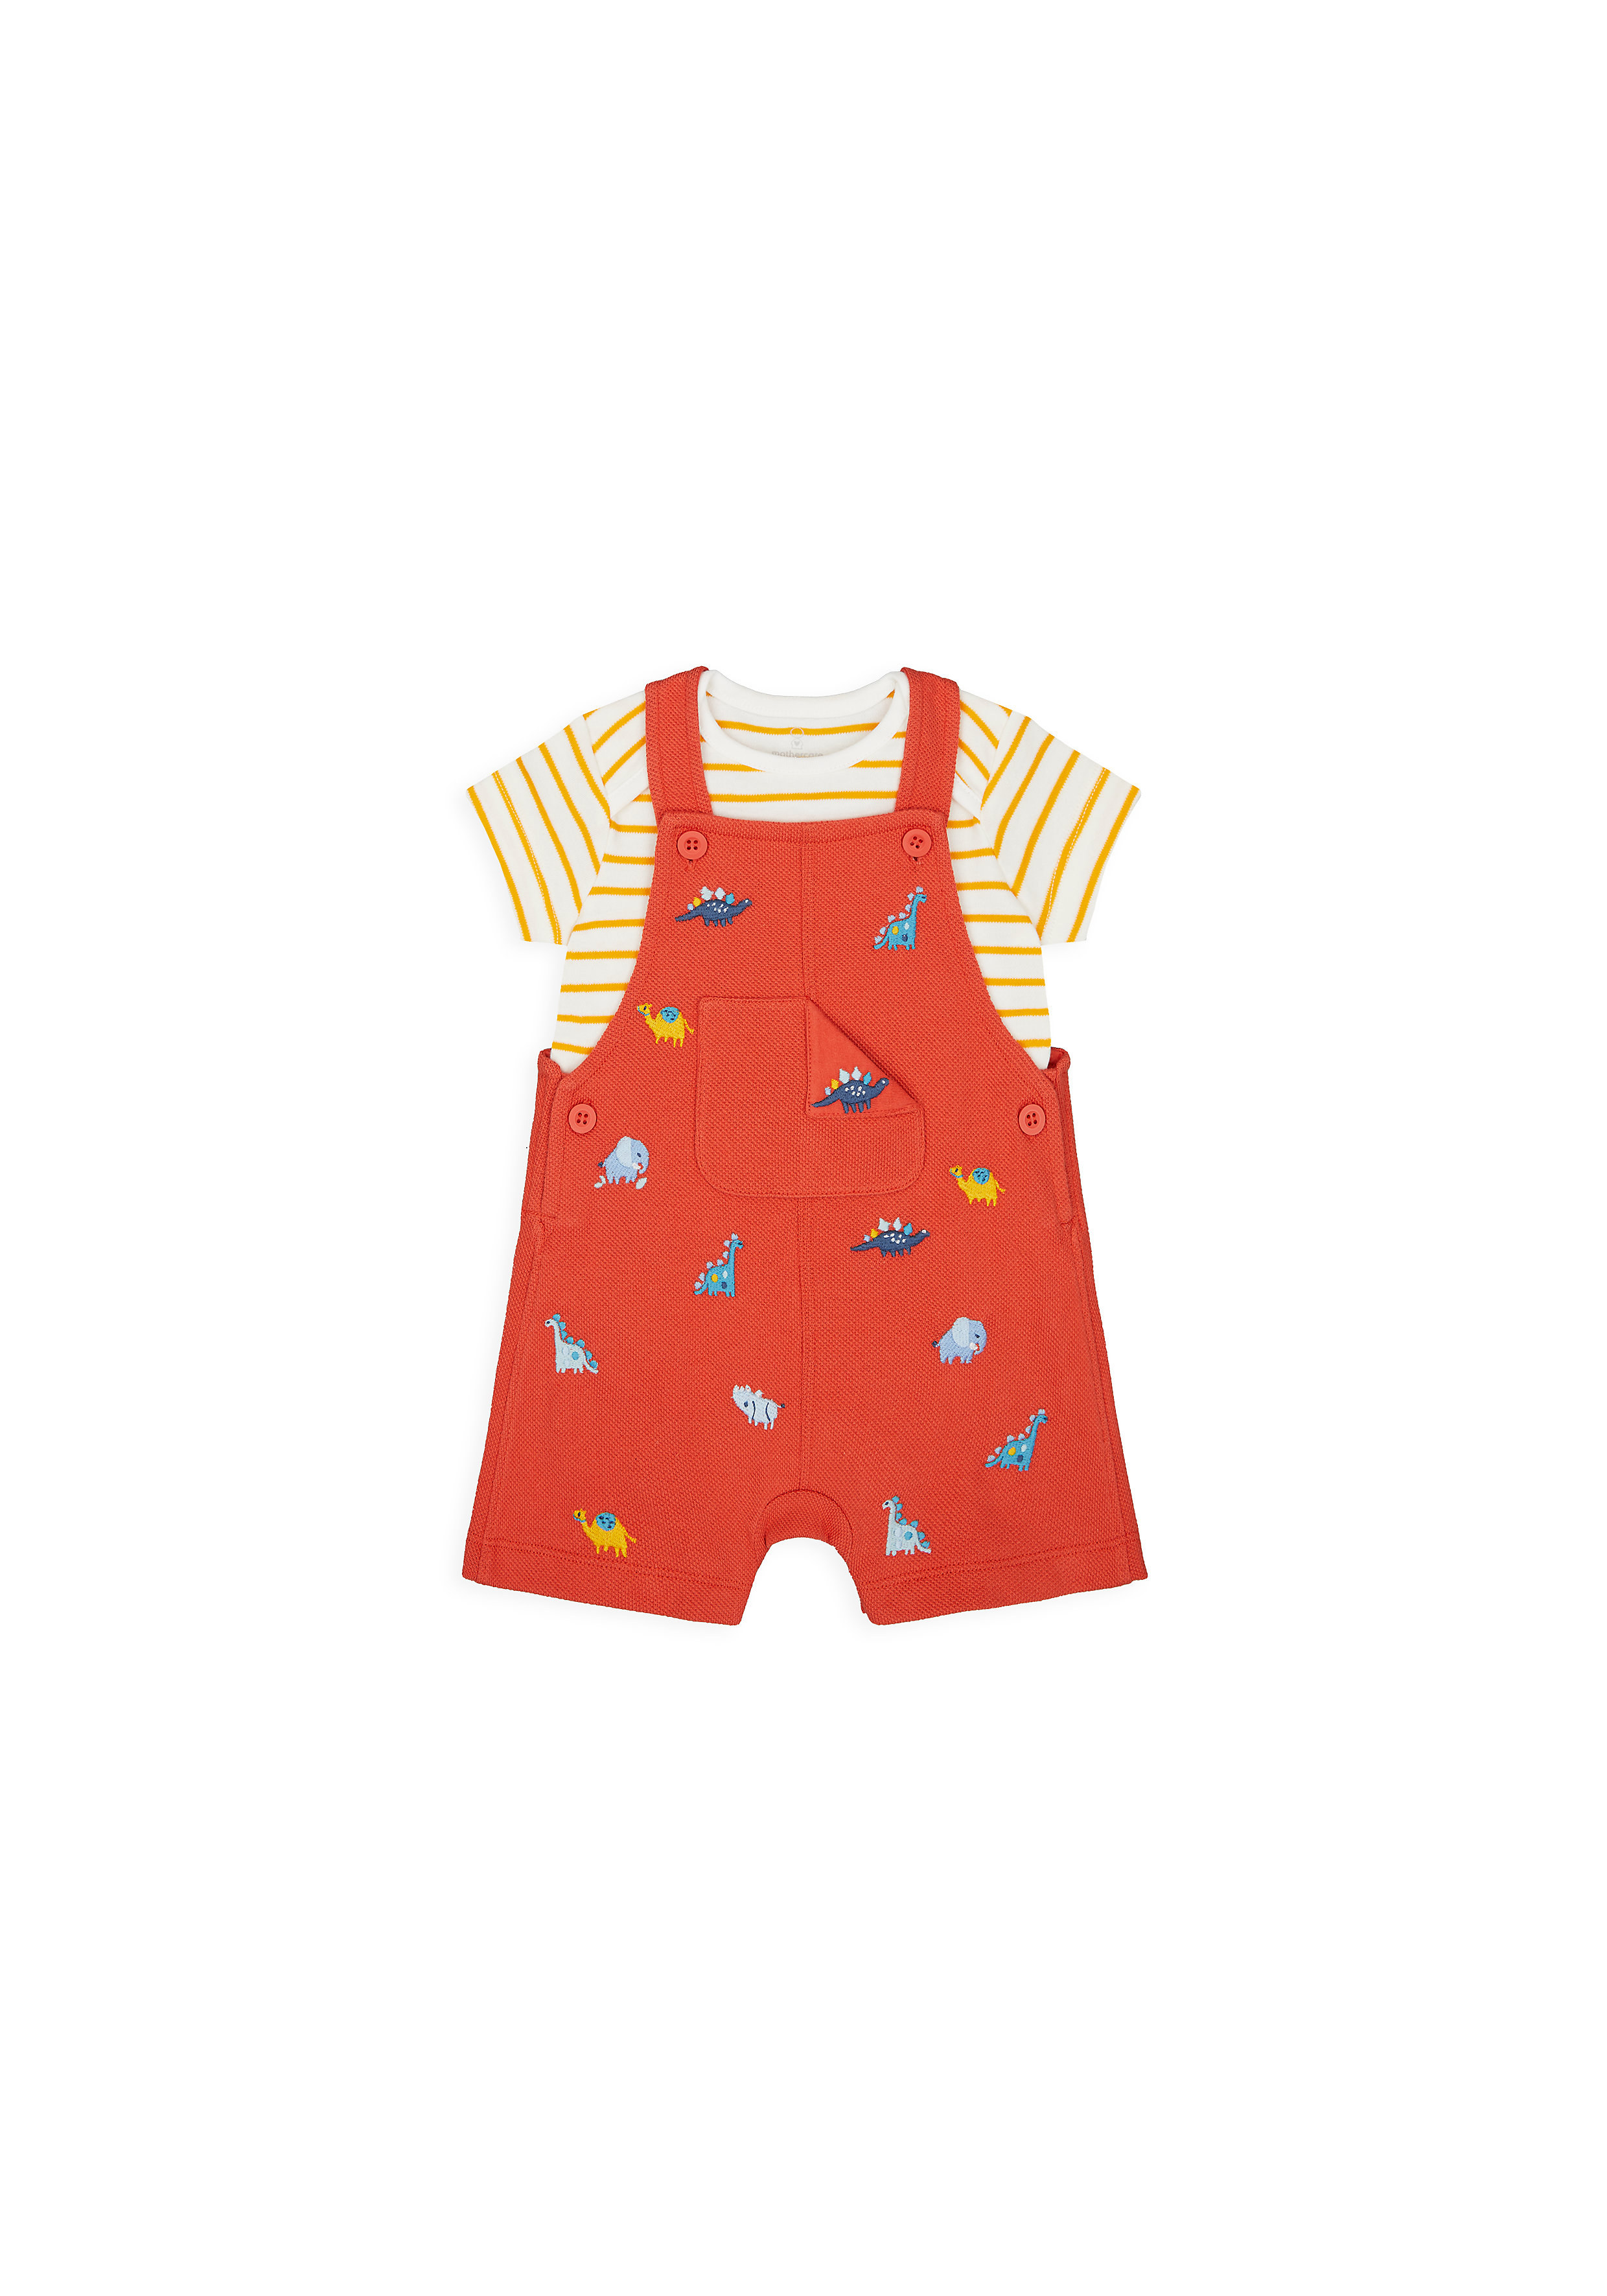 Mothercare | Boys Half Sleeves Dungaree Set Dino Embroidery - Red